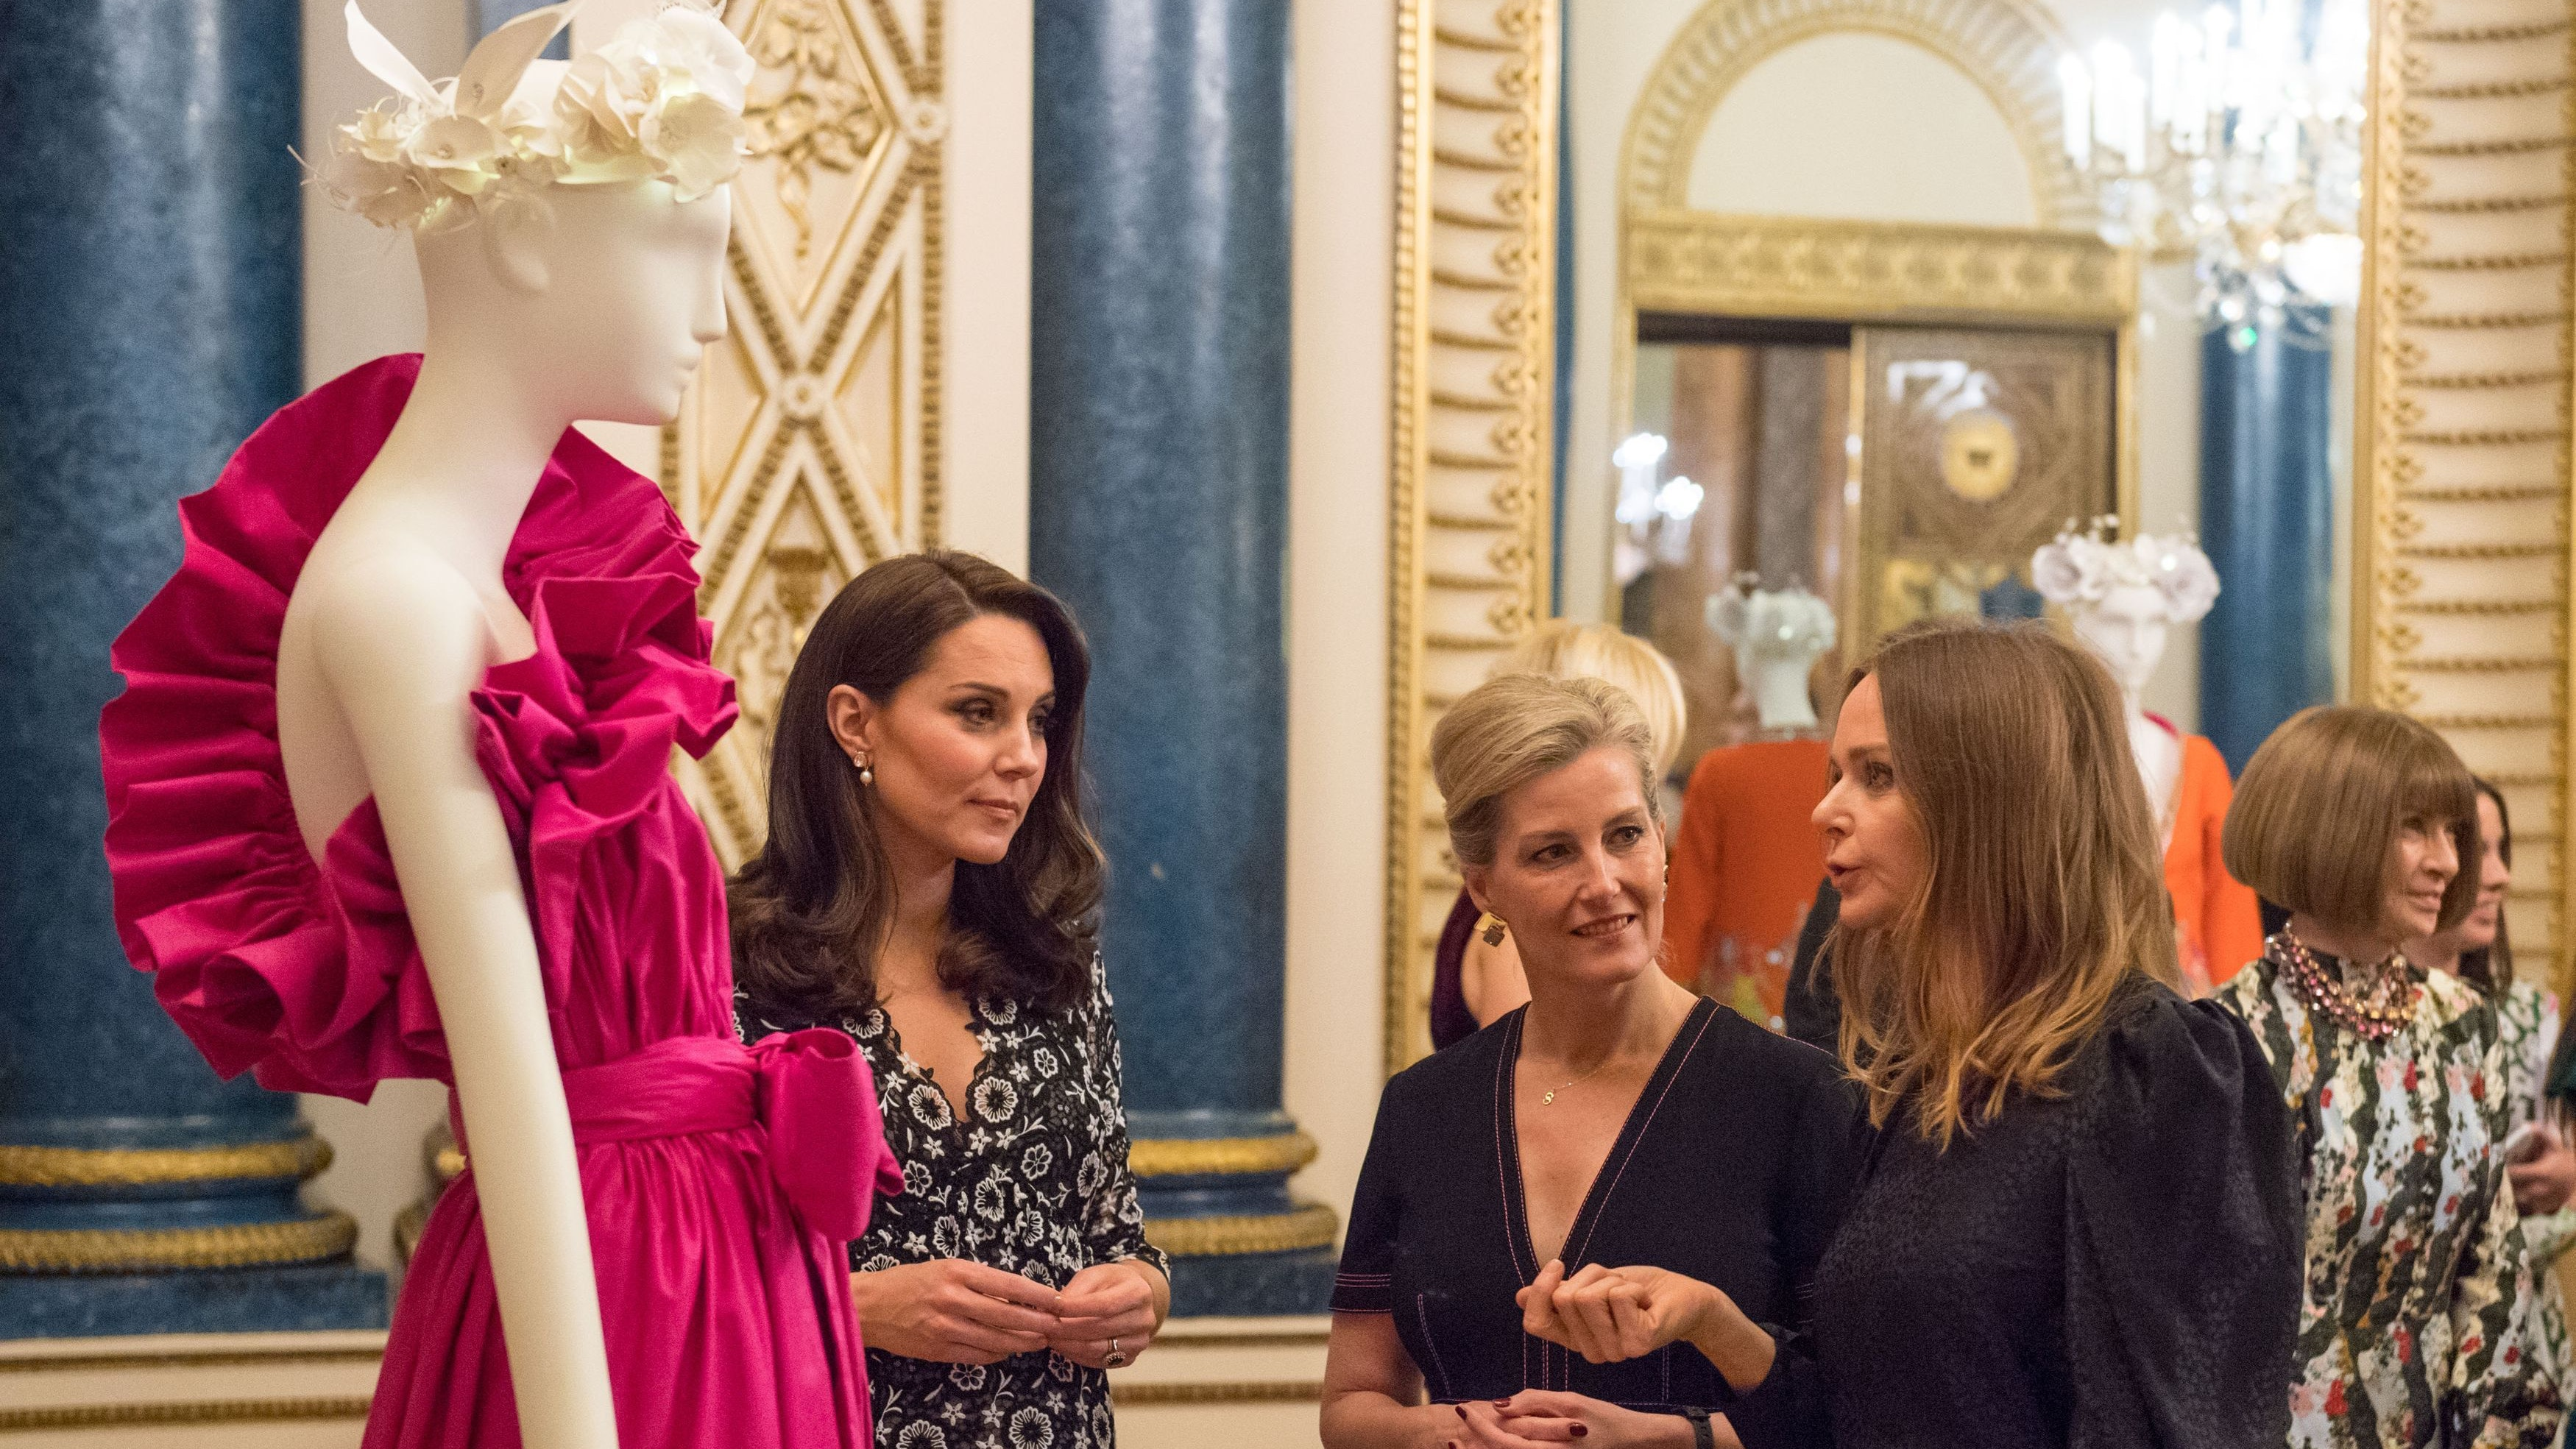 Kate Middleton Welcomed Fashion Royalty to Buckingham Palace Last Night